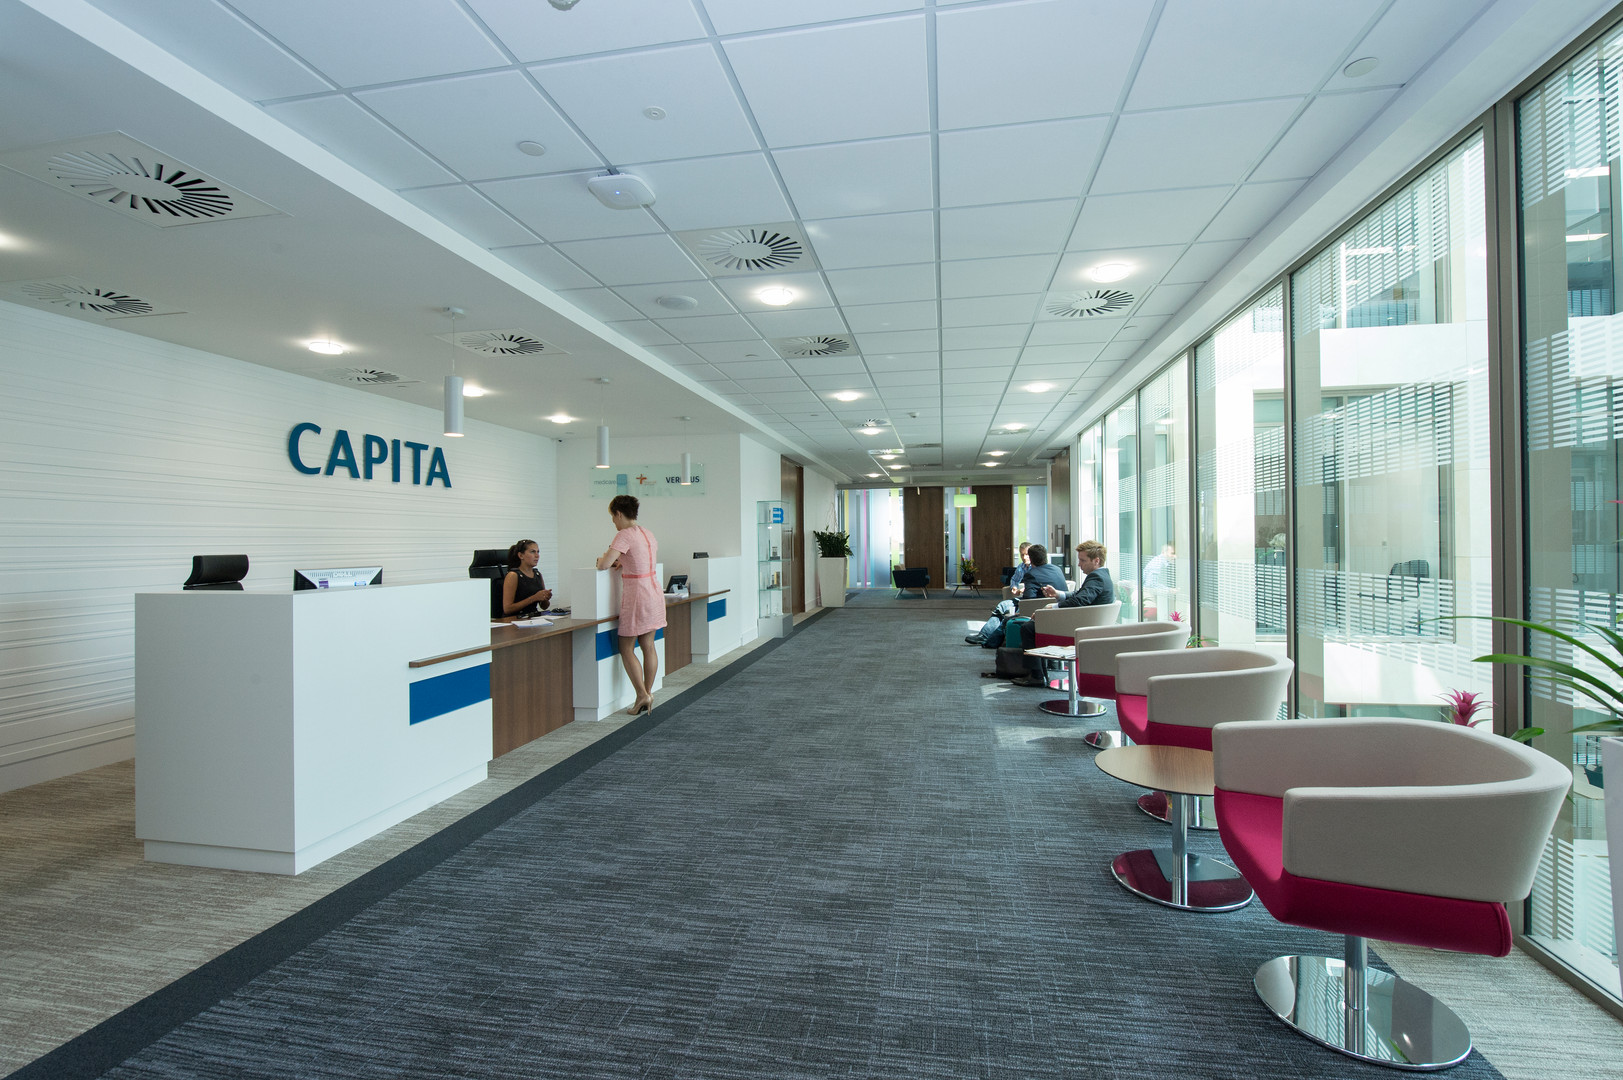 Capita, London offcie reception